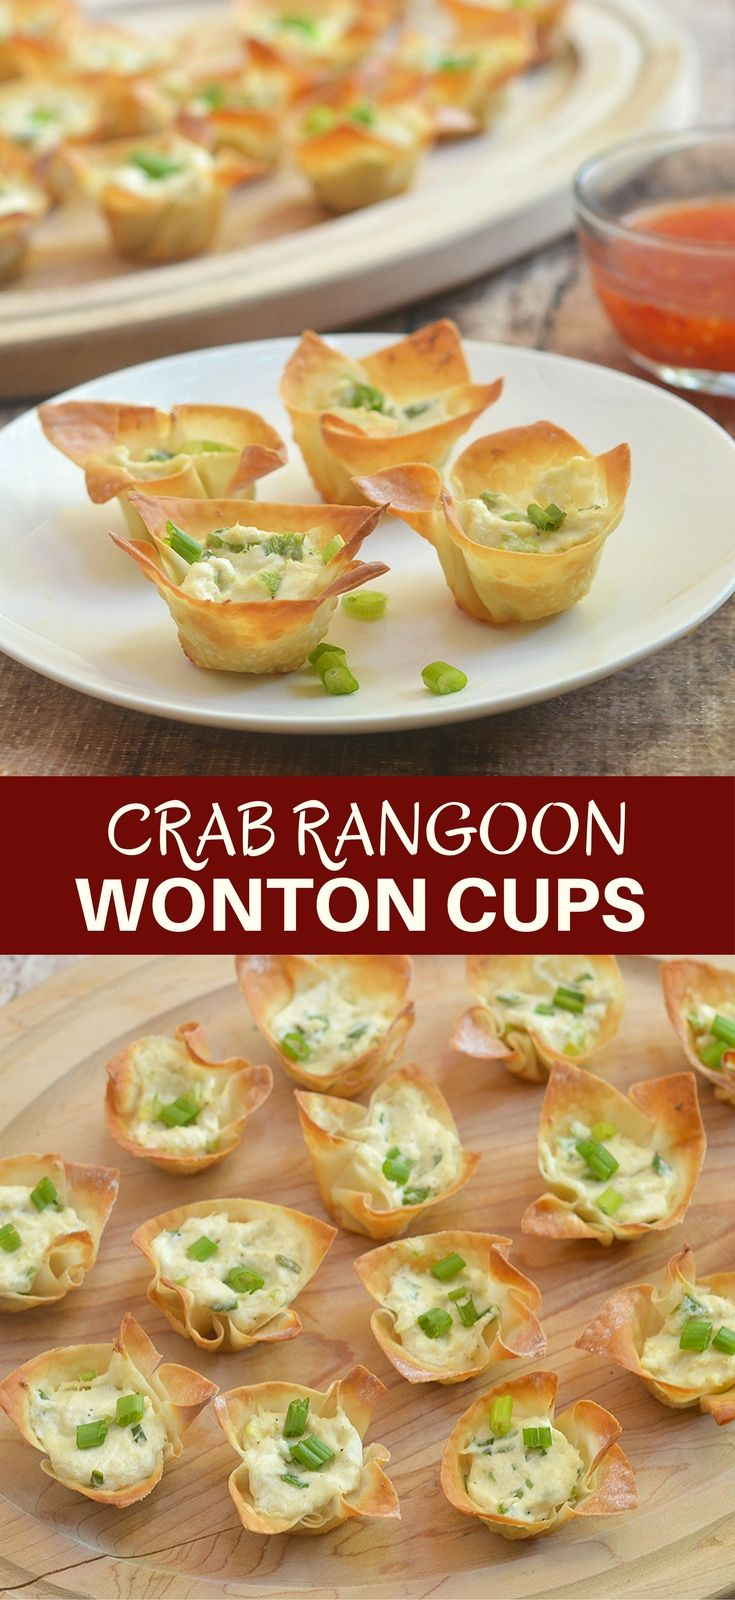 Crab Rangoon Wonton Cups with all the flavors of your favorite Chinese appetizer but baked for less guilt snacking. Crispy, creamy and tasty, they're a guaranteed party hit!